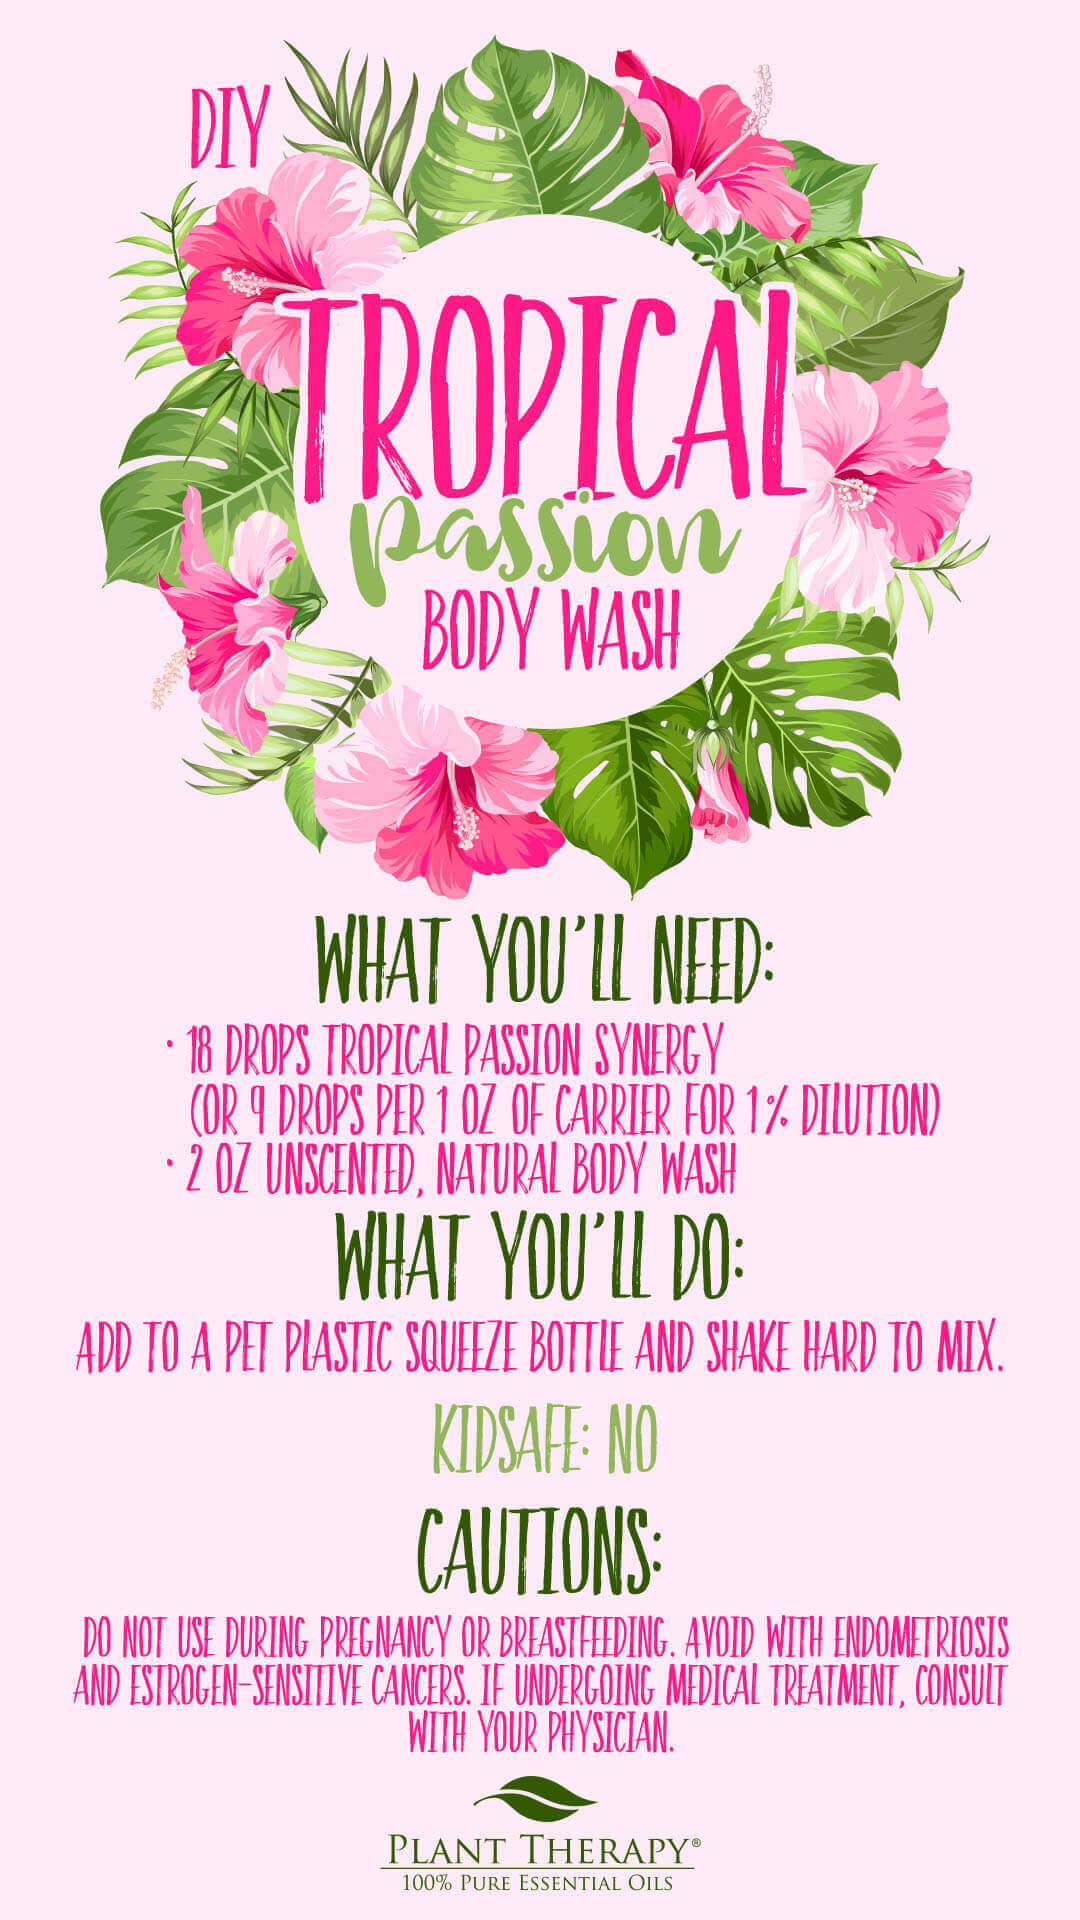 Tropical passion body wash DIY instructions